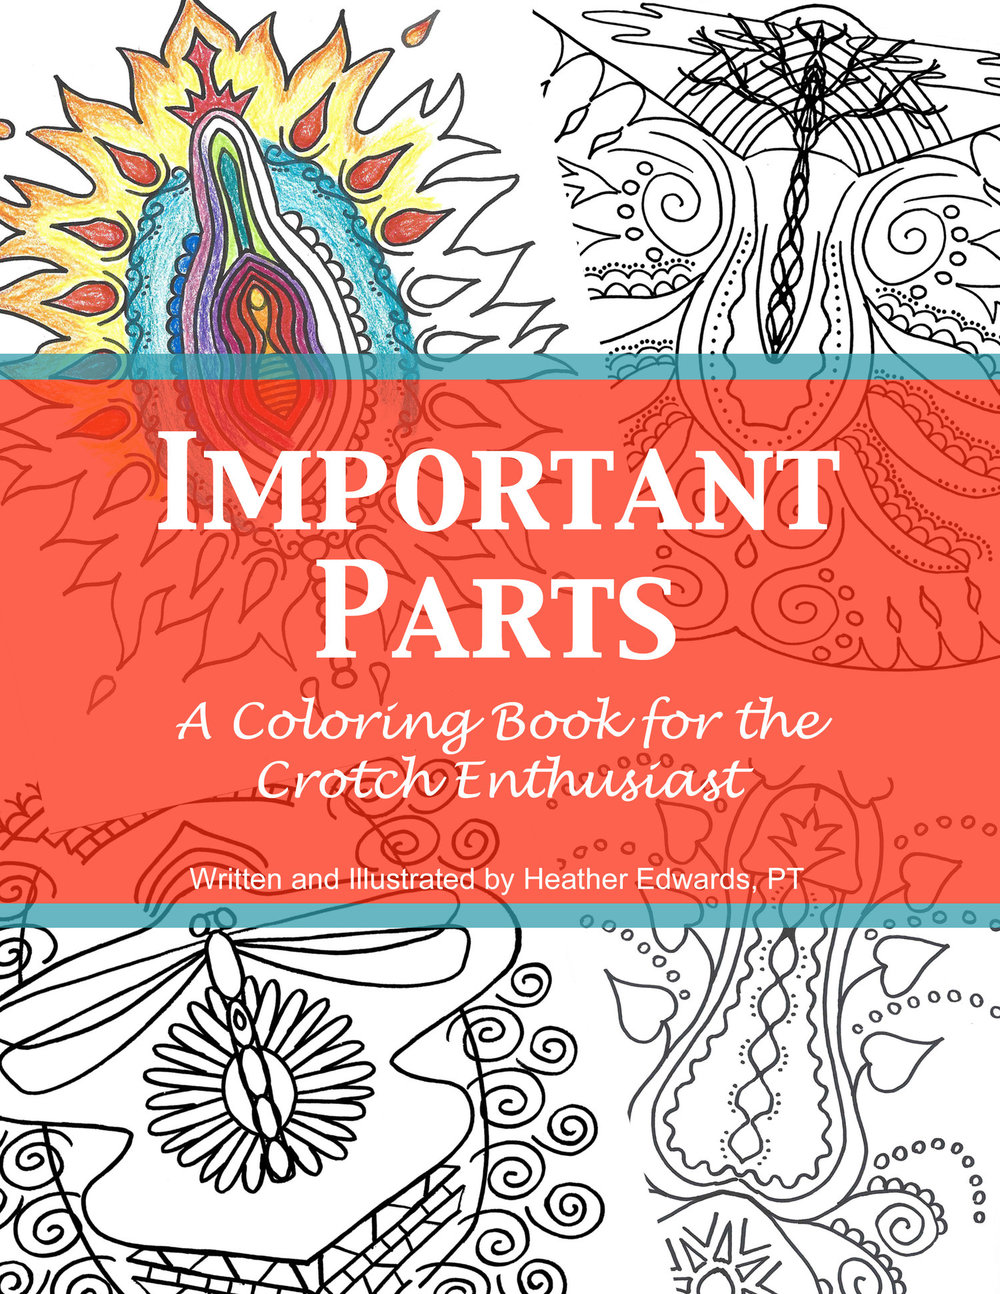 CROTCH COLORING BOOK   Color your cares away in an empowering and playful way! $17.99 by Heather Edwards